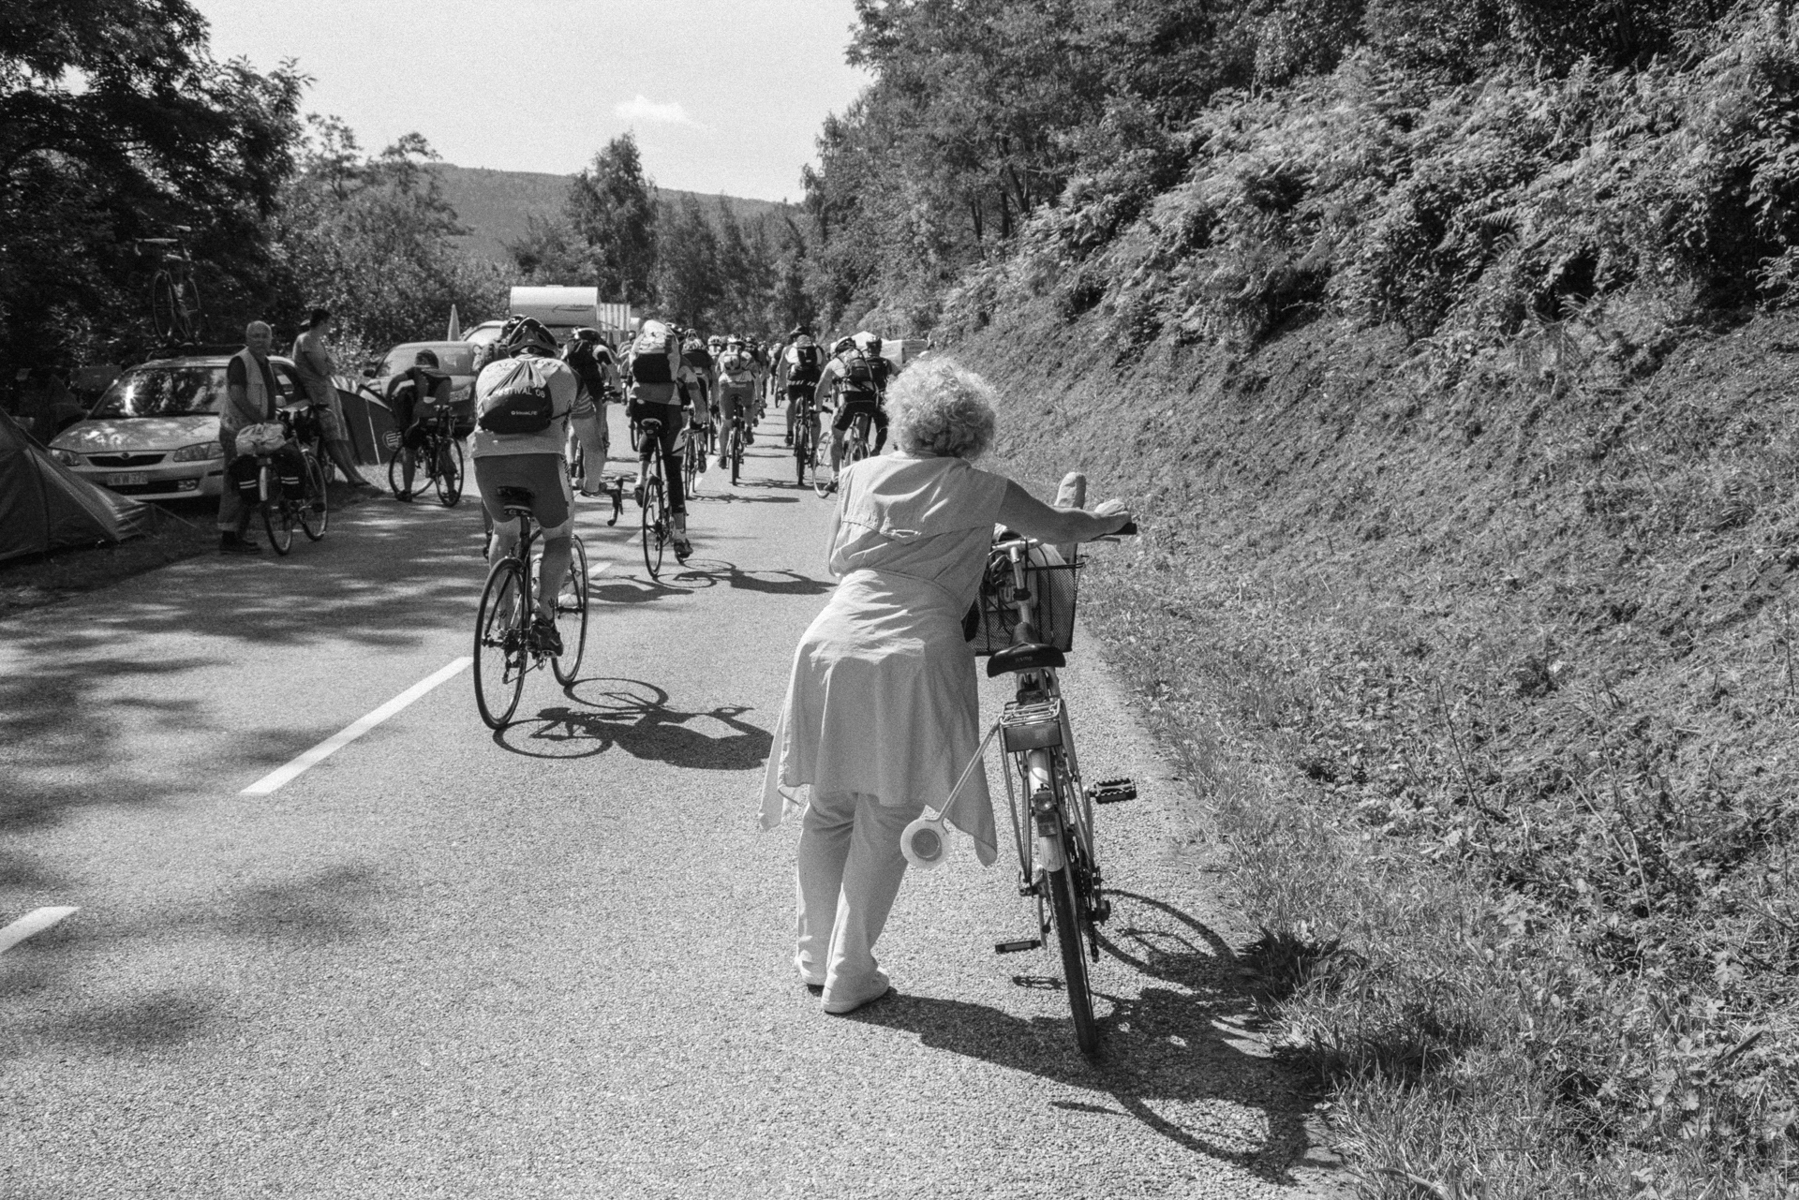 Le Tour de France 2011 You had better bring something to eat. Il vaut mieux apporter quelque chose à manger. Am Besten, man bringt etwas zu Essen mit. Una buena idea: llevarse algo de comer.